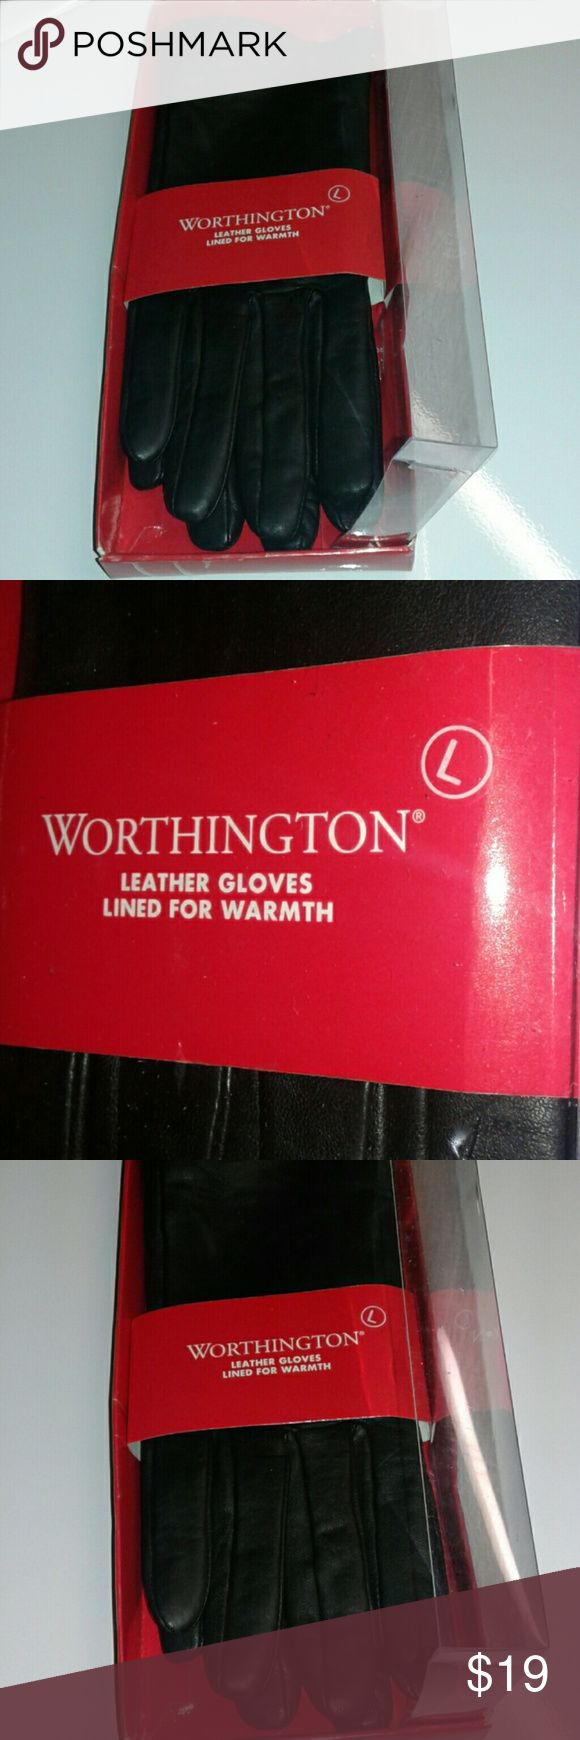 Ladies leather gloves designer -  Worthington Black Leather Gloves